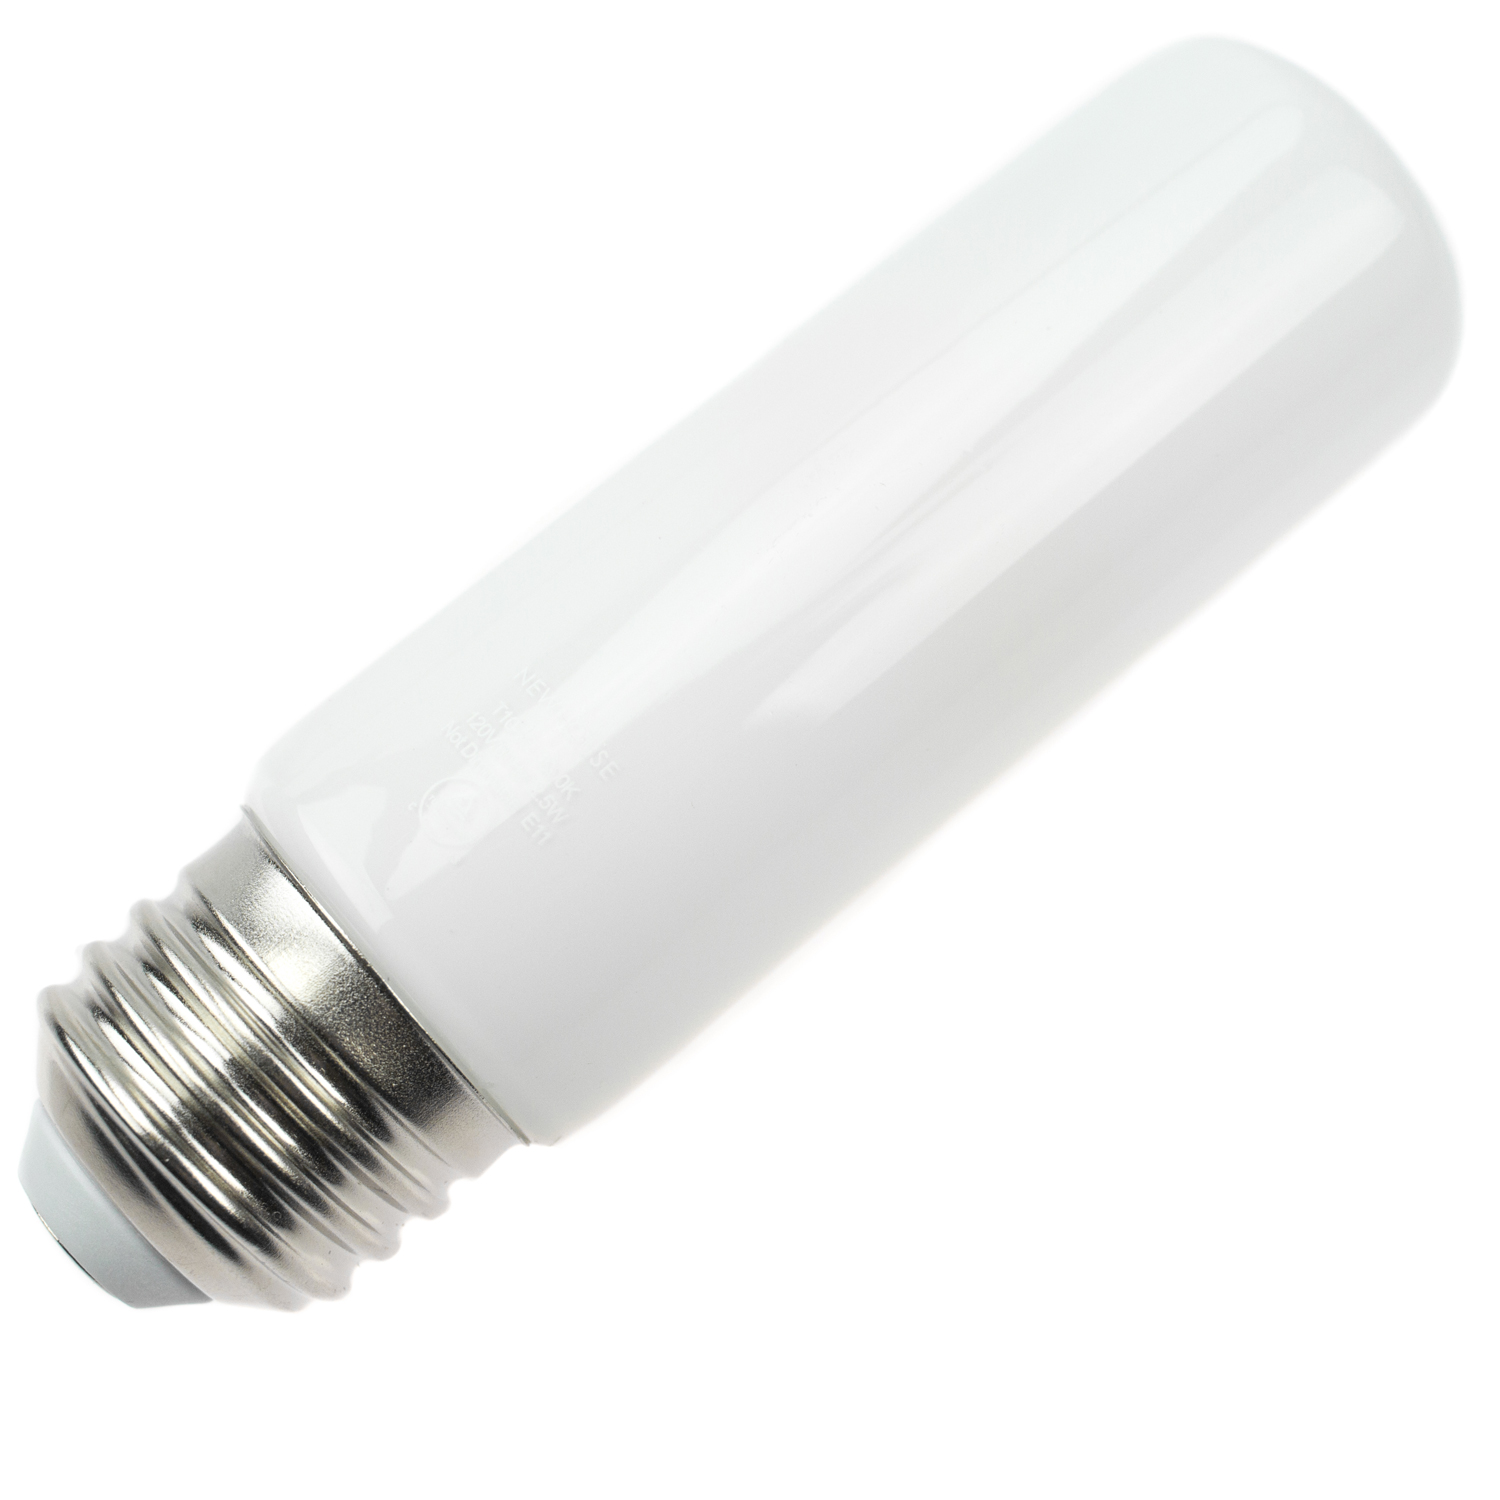 2 3w 20w Equivalent T10 2320 T10 Led Bulb Newhouse Lighting